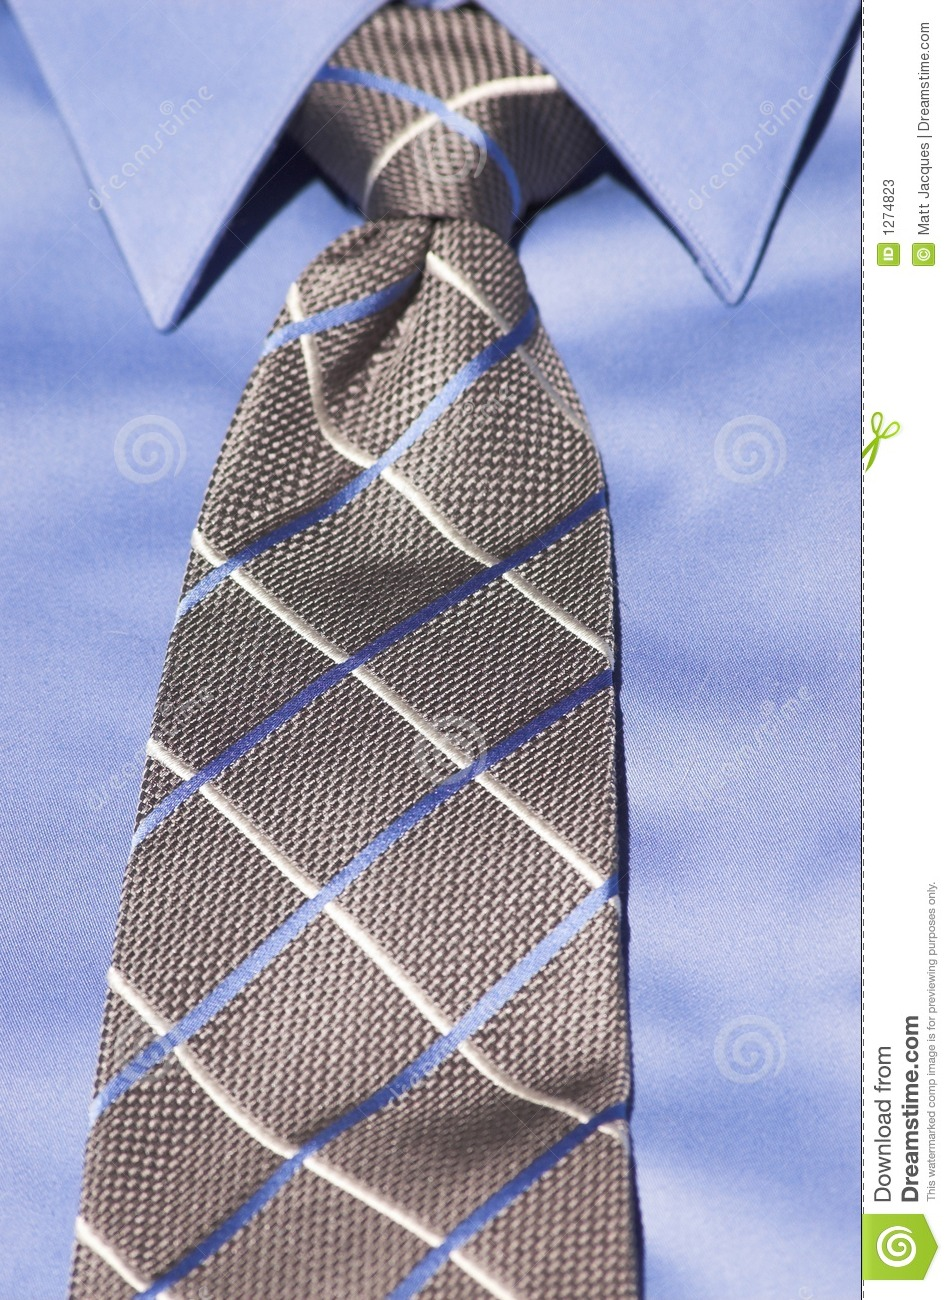 Close Up Of Blue Dress Shirt With Blue And White Striped Tie